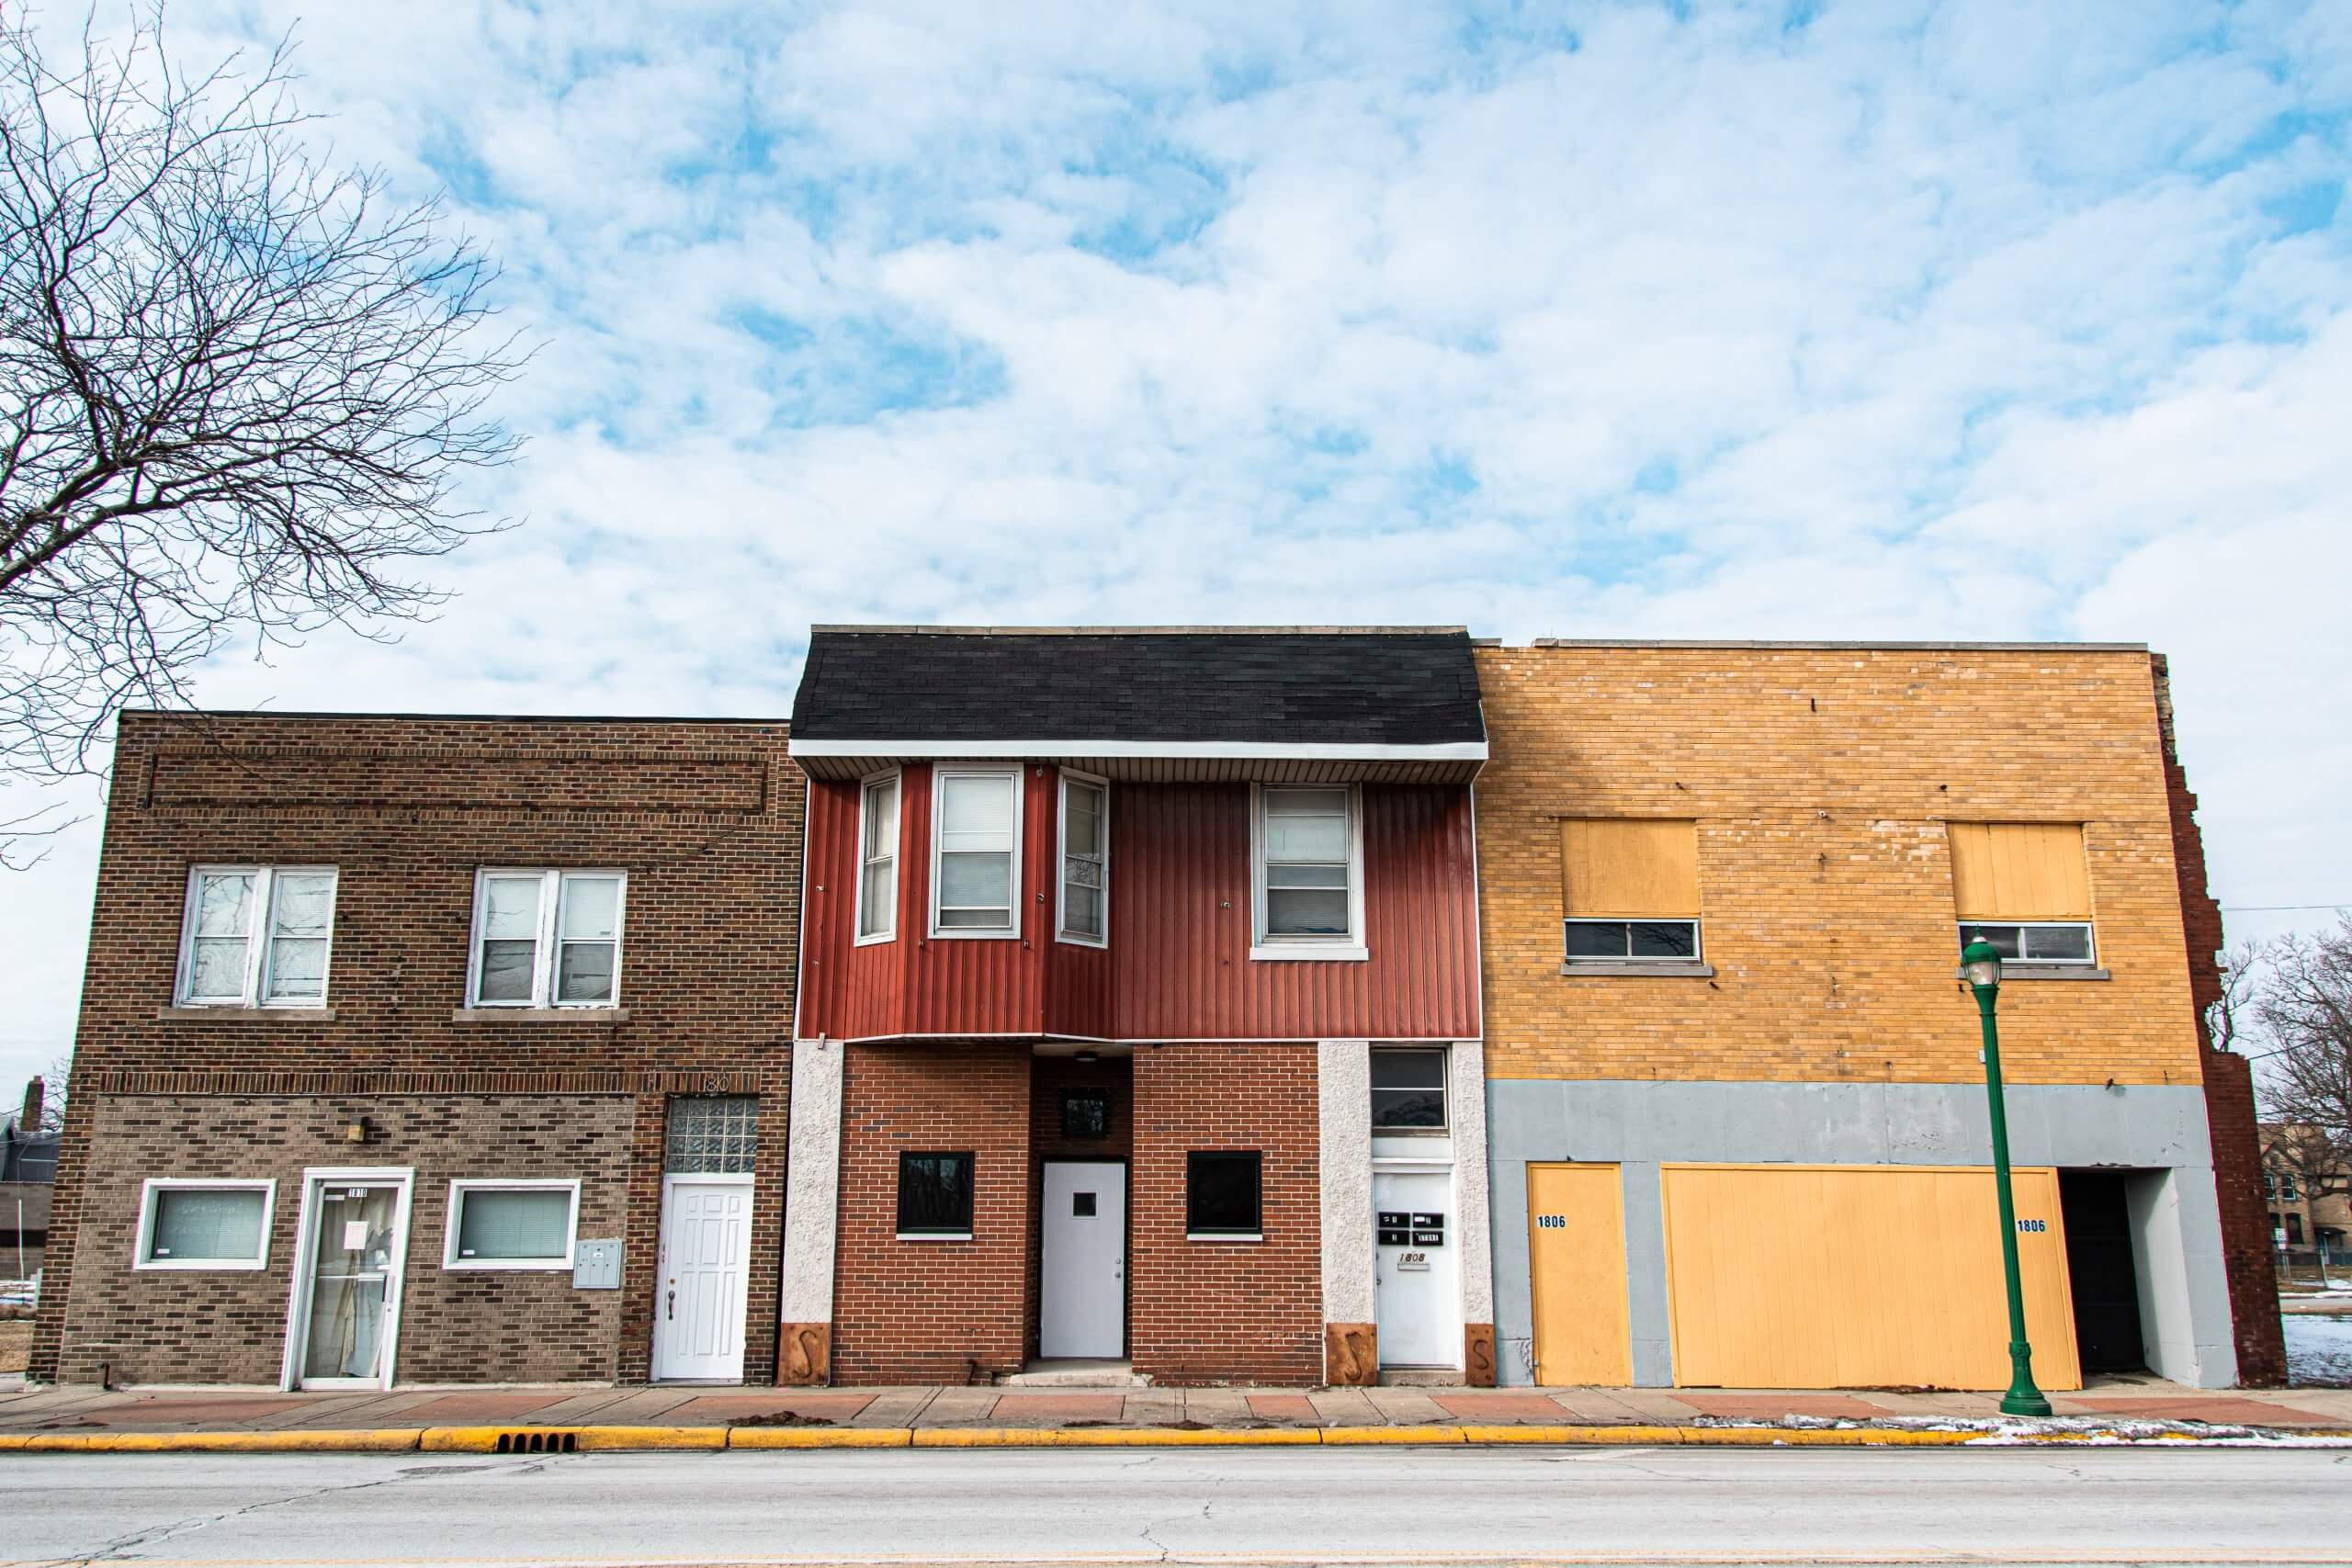 How Systemic Racism Continues To Determine Black Health And Wealth In Chicago